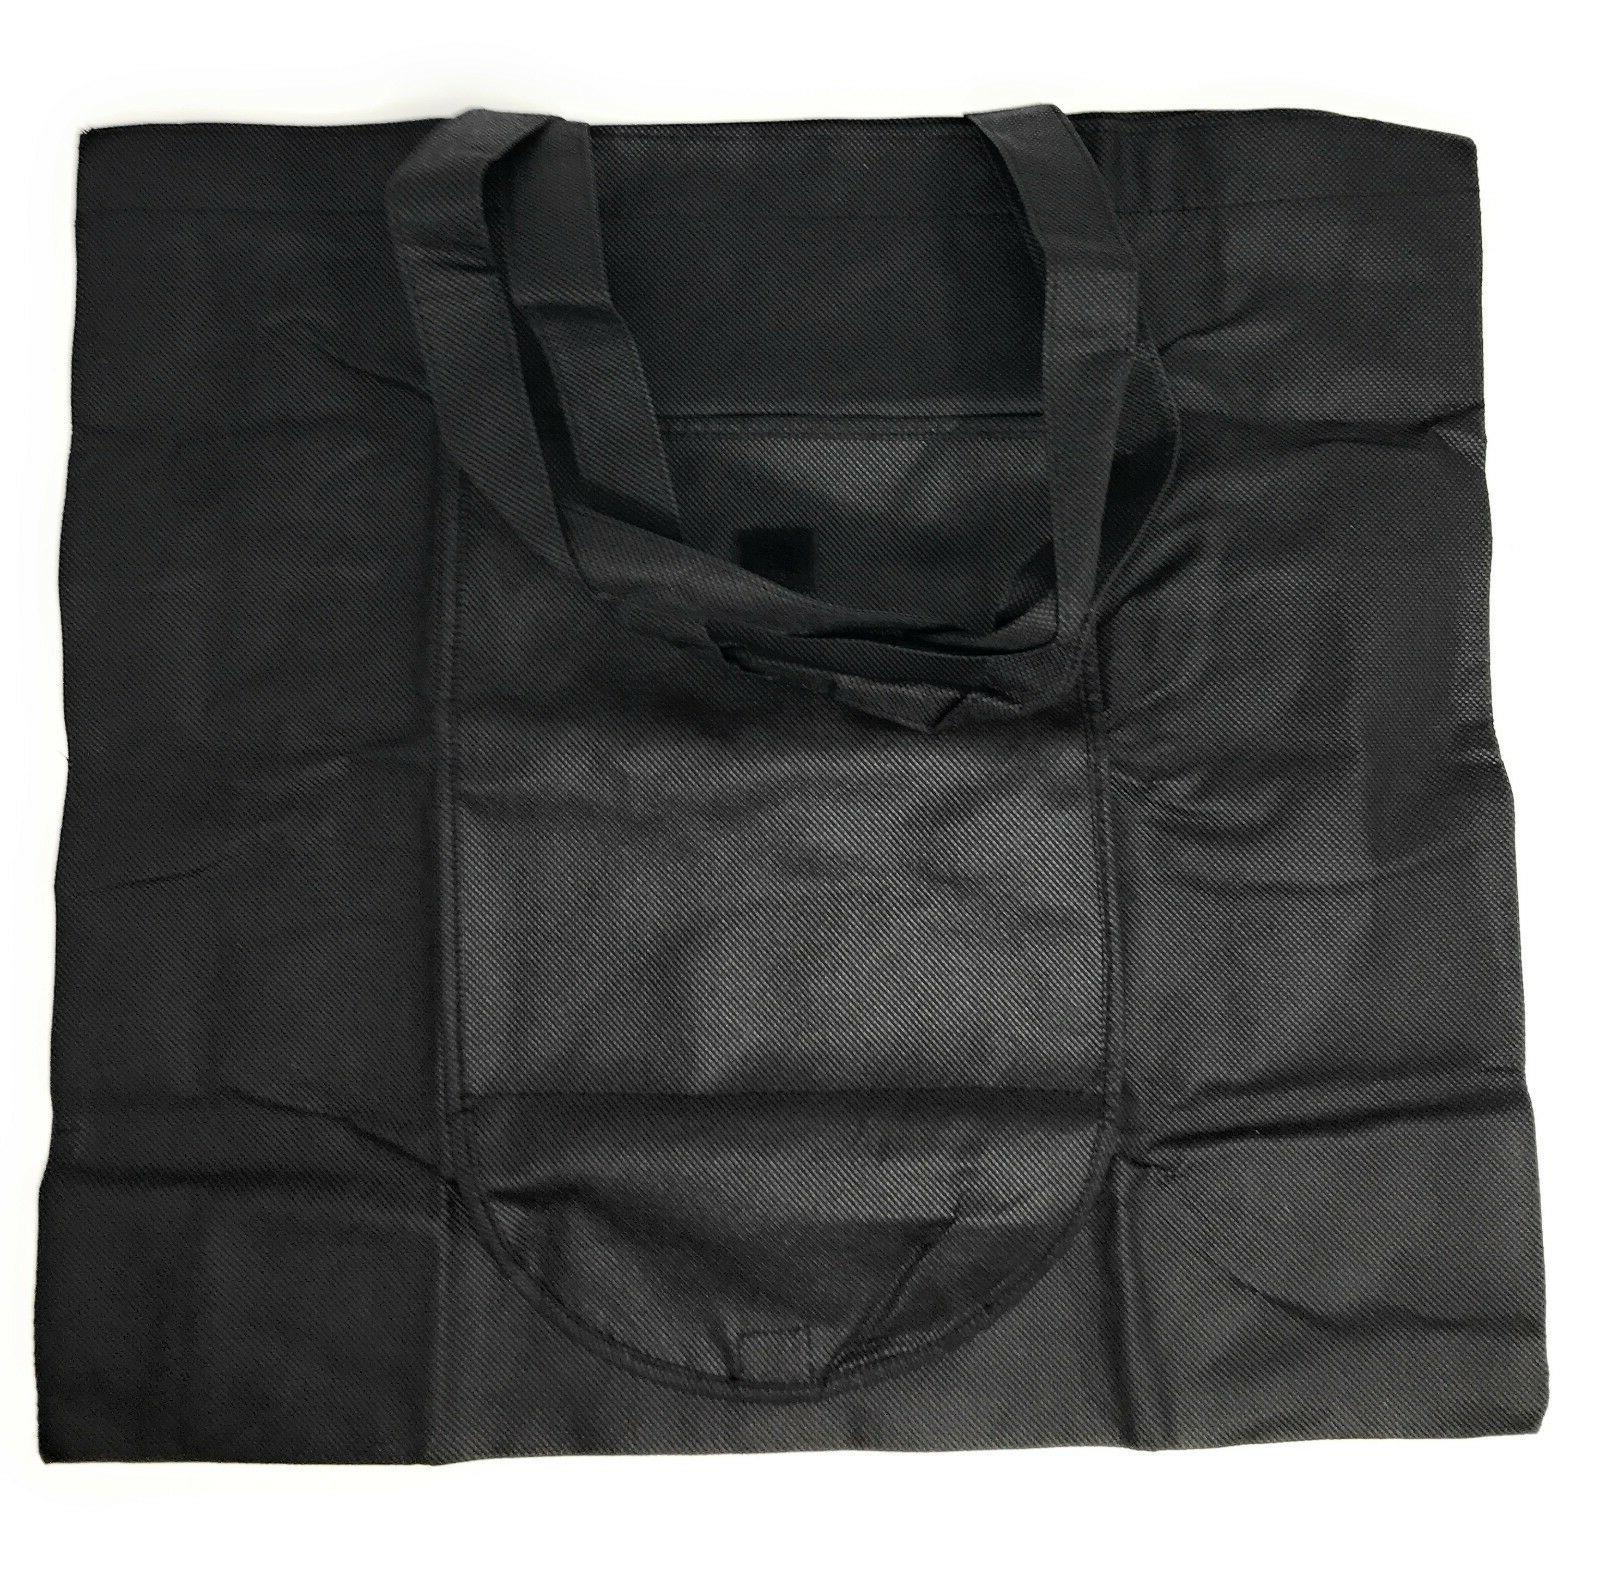 3 Large Reusable Grocery Tote Bags Eco-Friendly